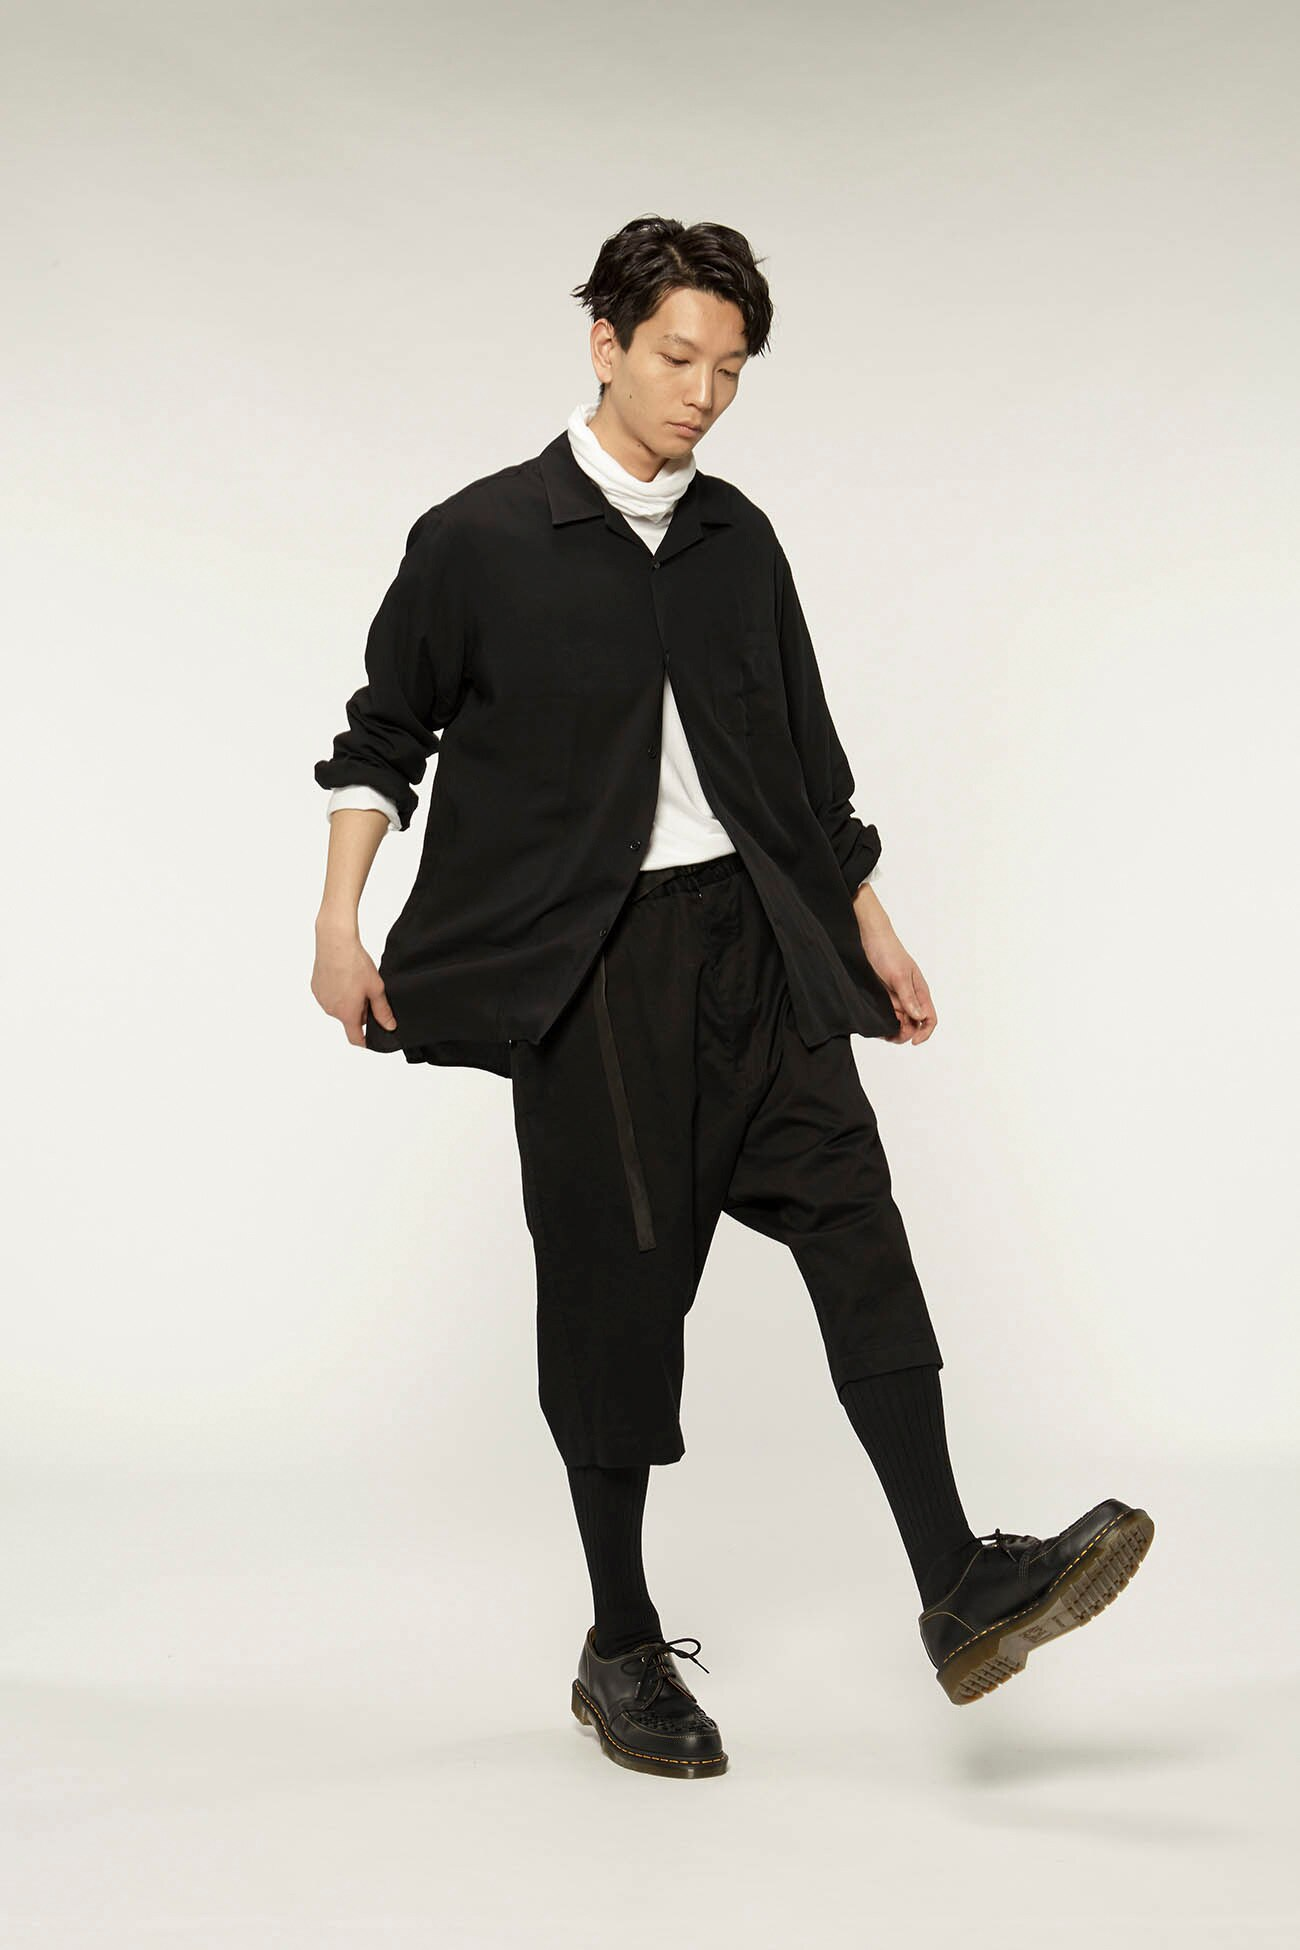 20/Cotton TwillDrop Hip 6-Quarter-Length Pants